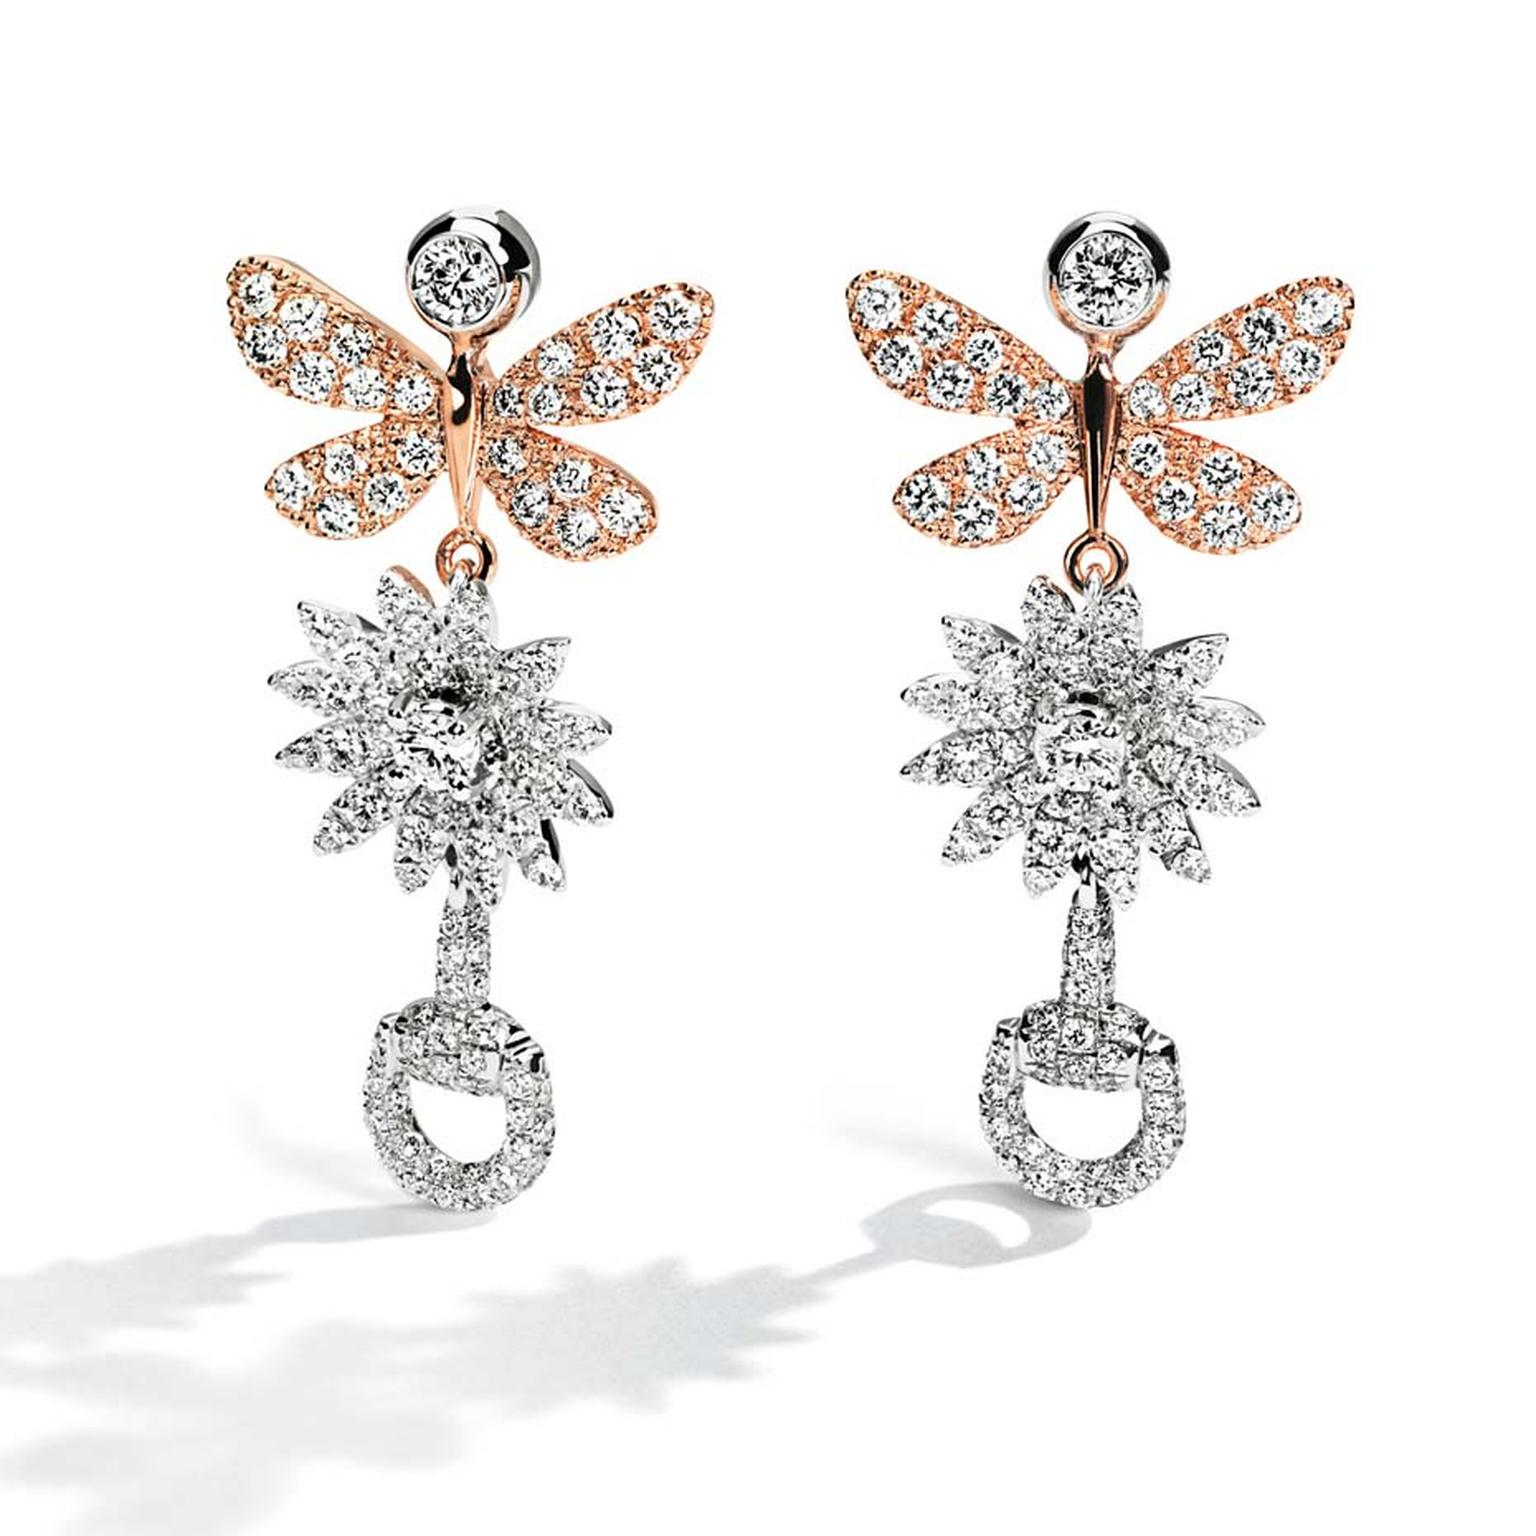 Butterfly jewellery_Basel_Gucci_Rose gold and white gold diamond butterfly drop earrings.jpg